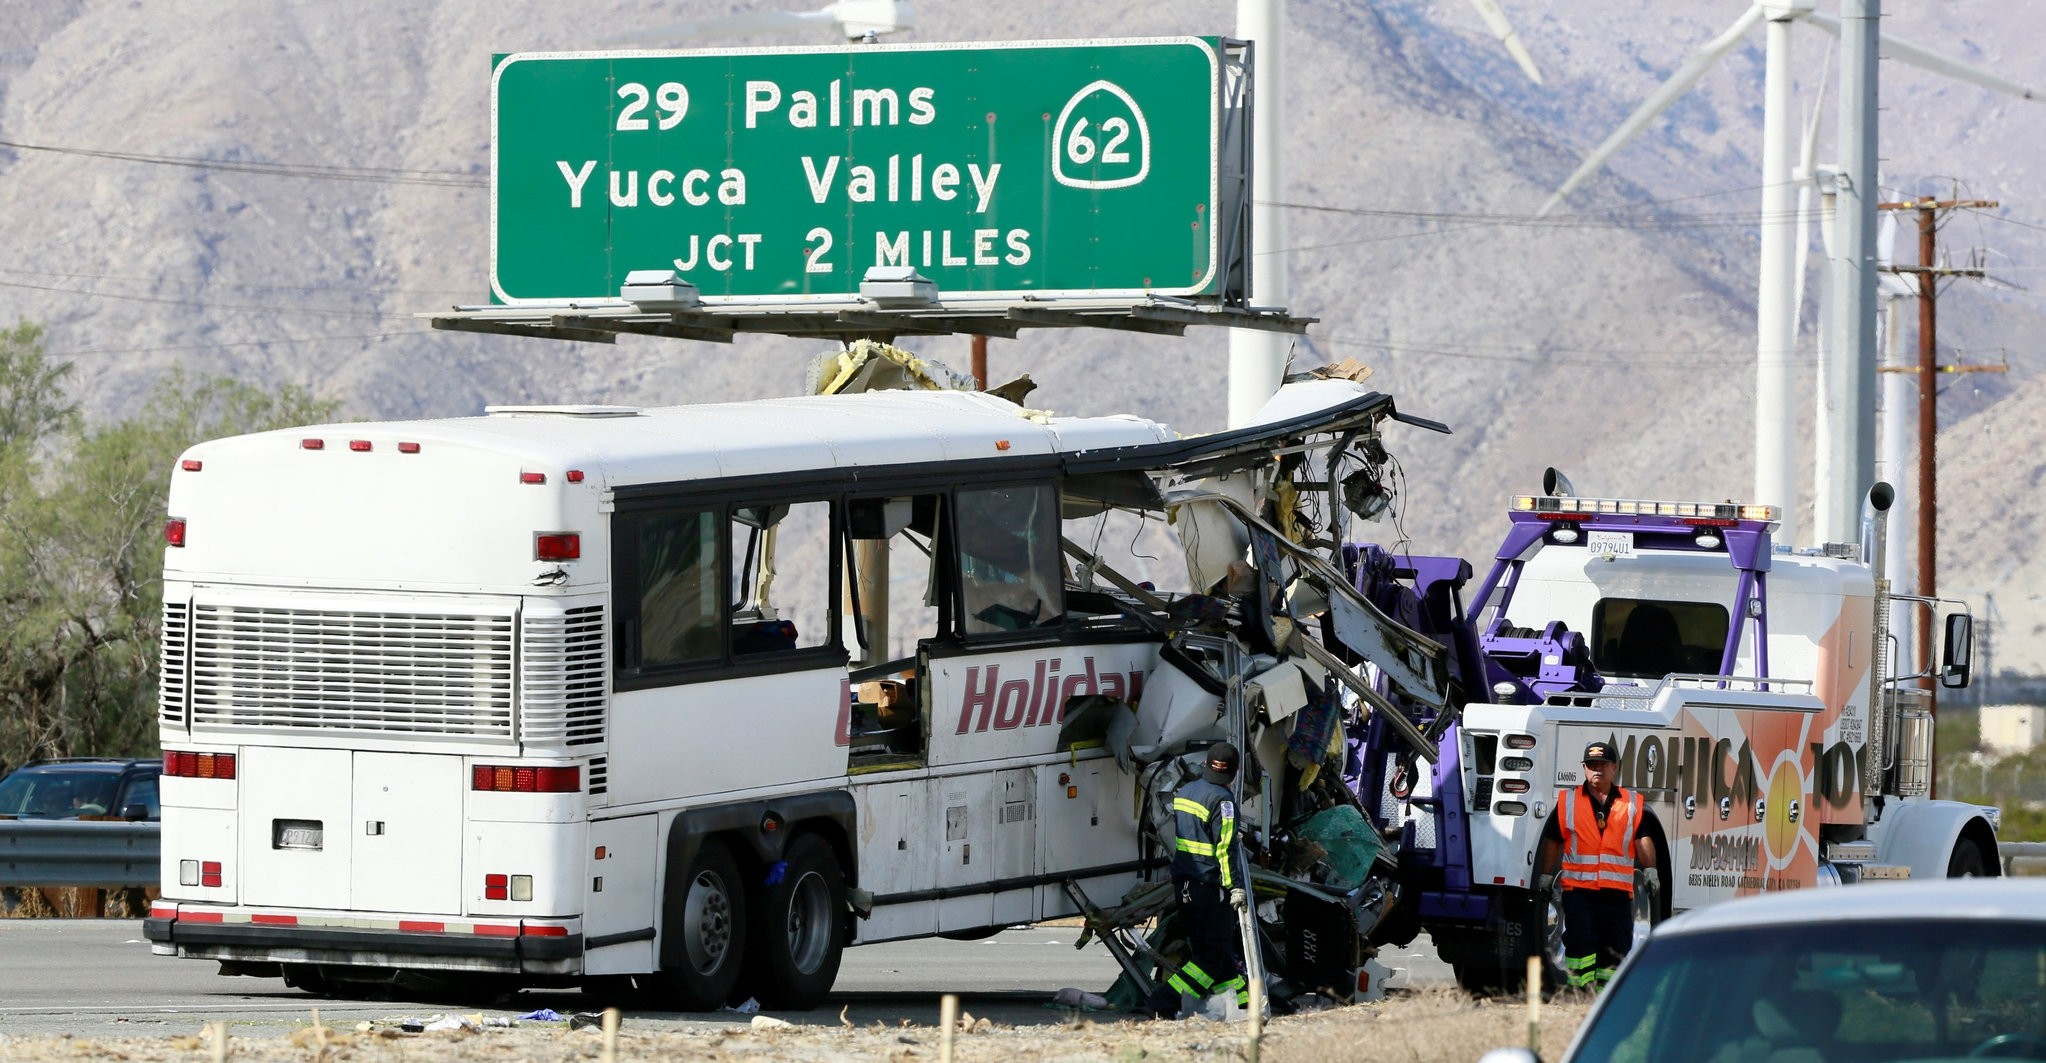 A mangled bus from the Holiday Bus Lines is seen after being towed from the scene of a mass casualty crash near Palm Springs, California October 23, 2016. (REUTERS Photo)